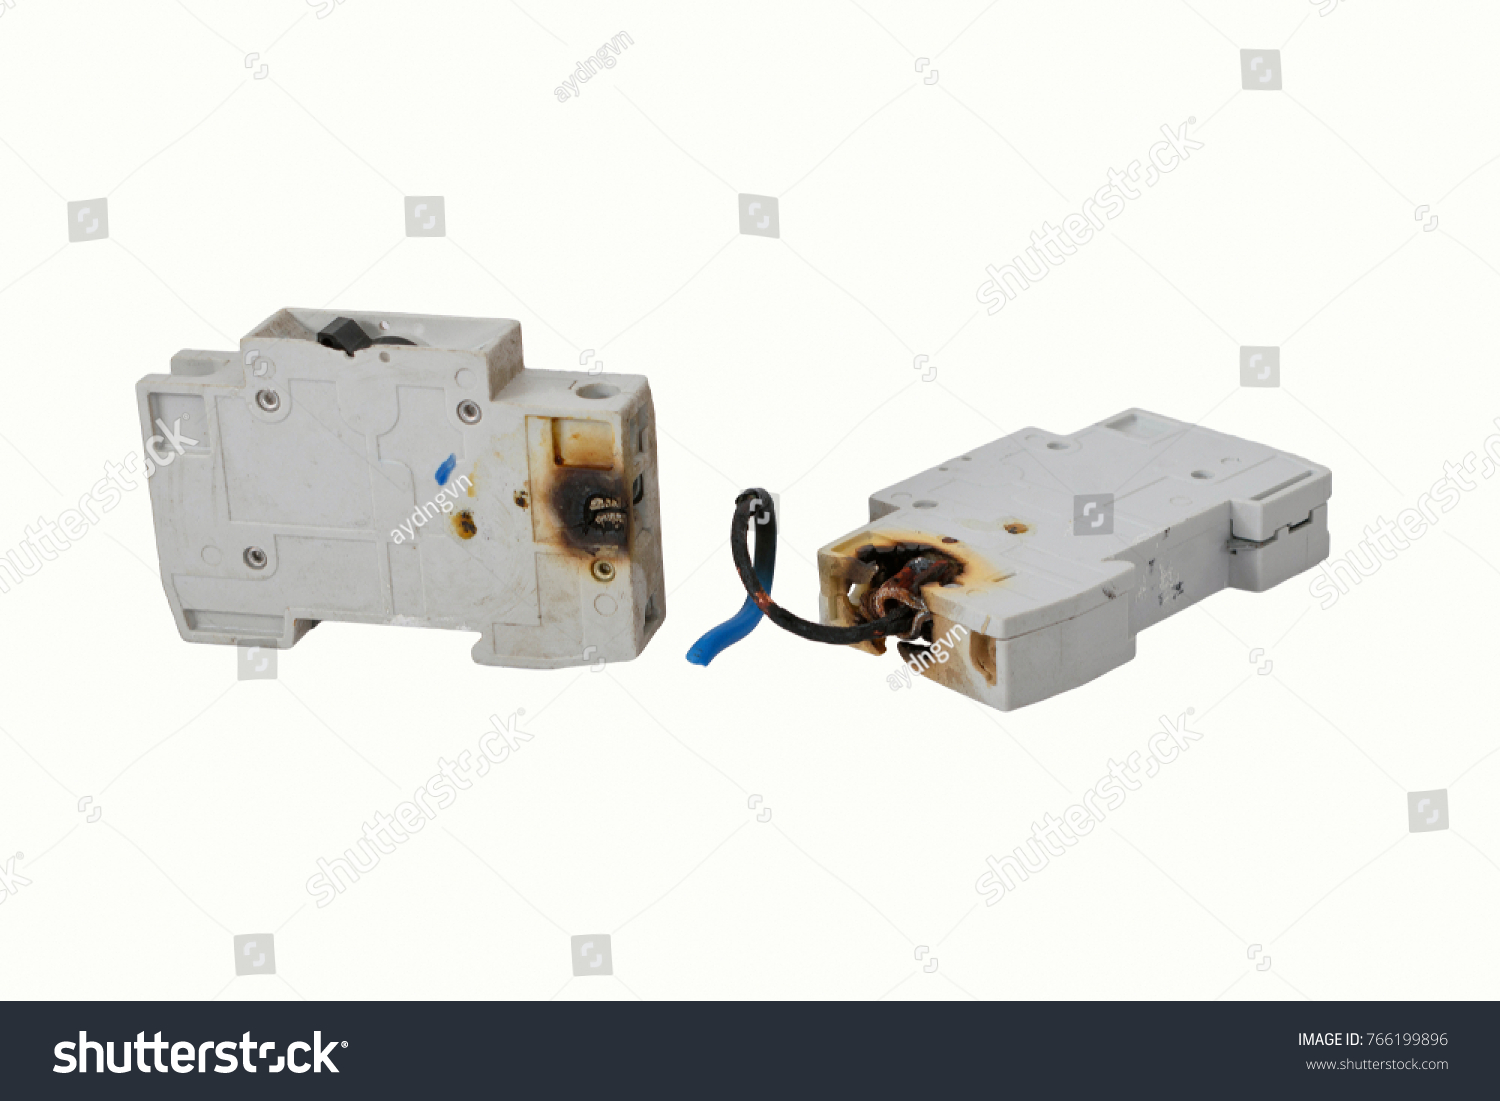 hight resolution of burned electrical circuit breaker fuse box on white background the burned cable